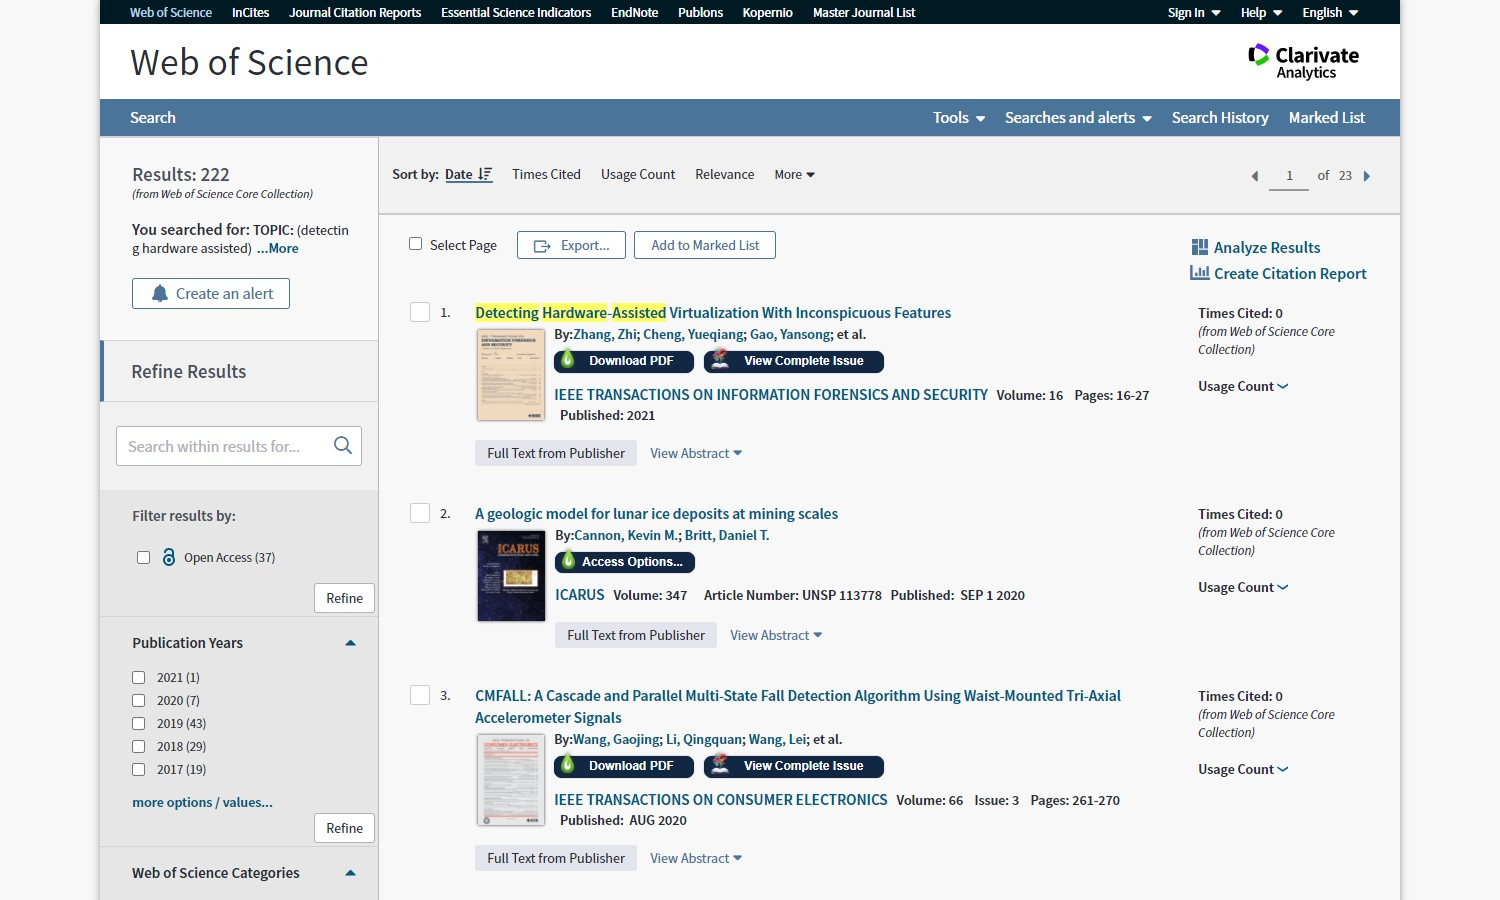 LibKey Nomad Working with Web of Science